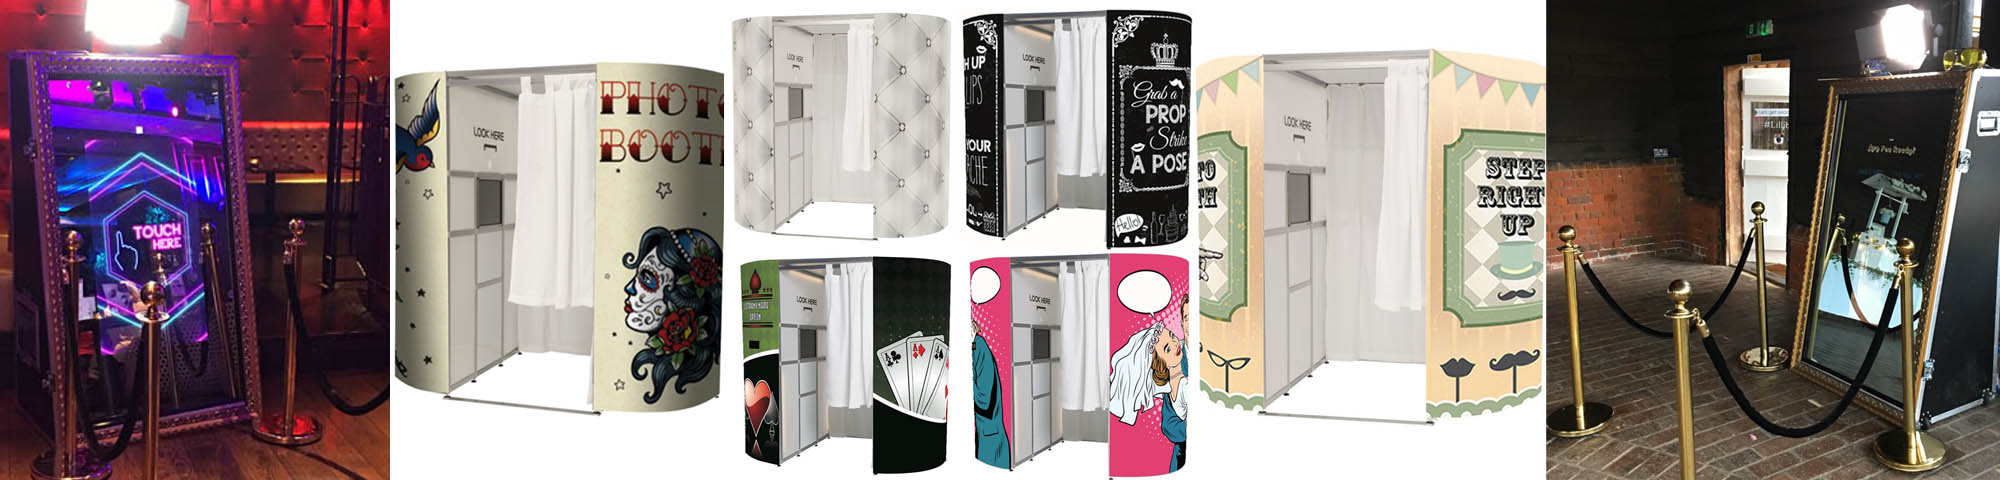 Selection of photo booths for hire in Kingston Upon Thames